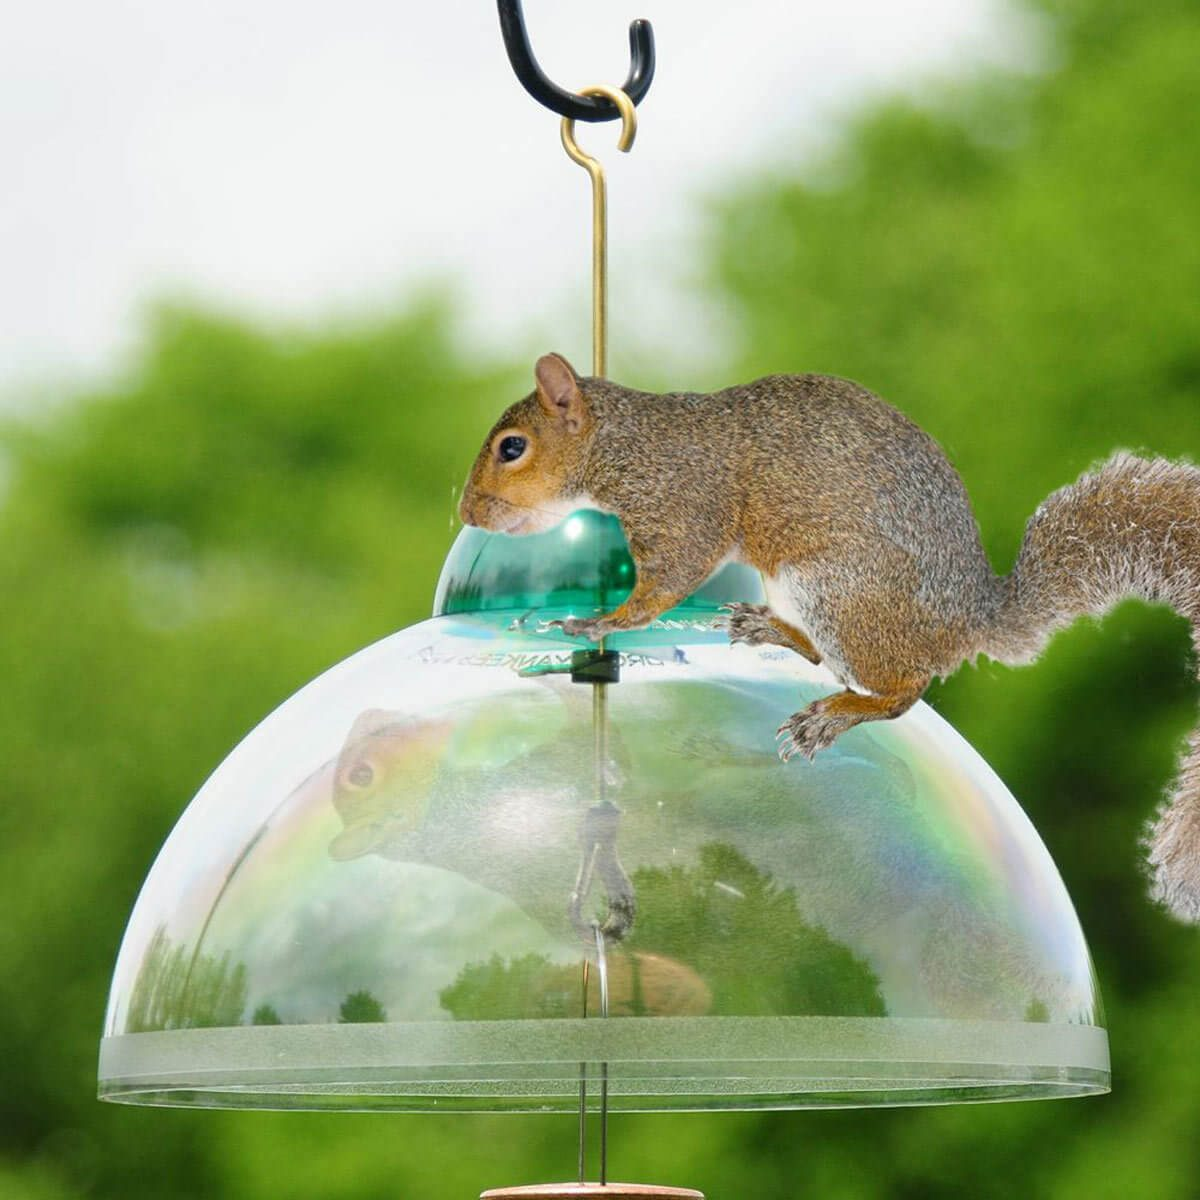 How To Safely Deter Animals That Steal From Your Garden